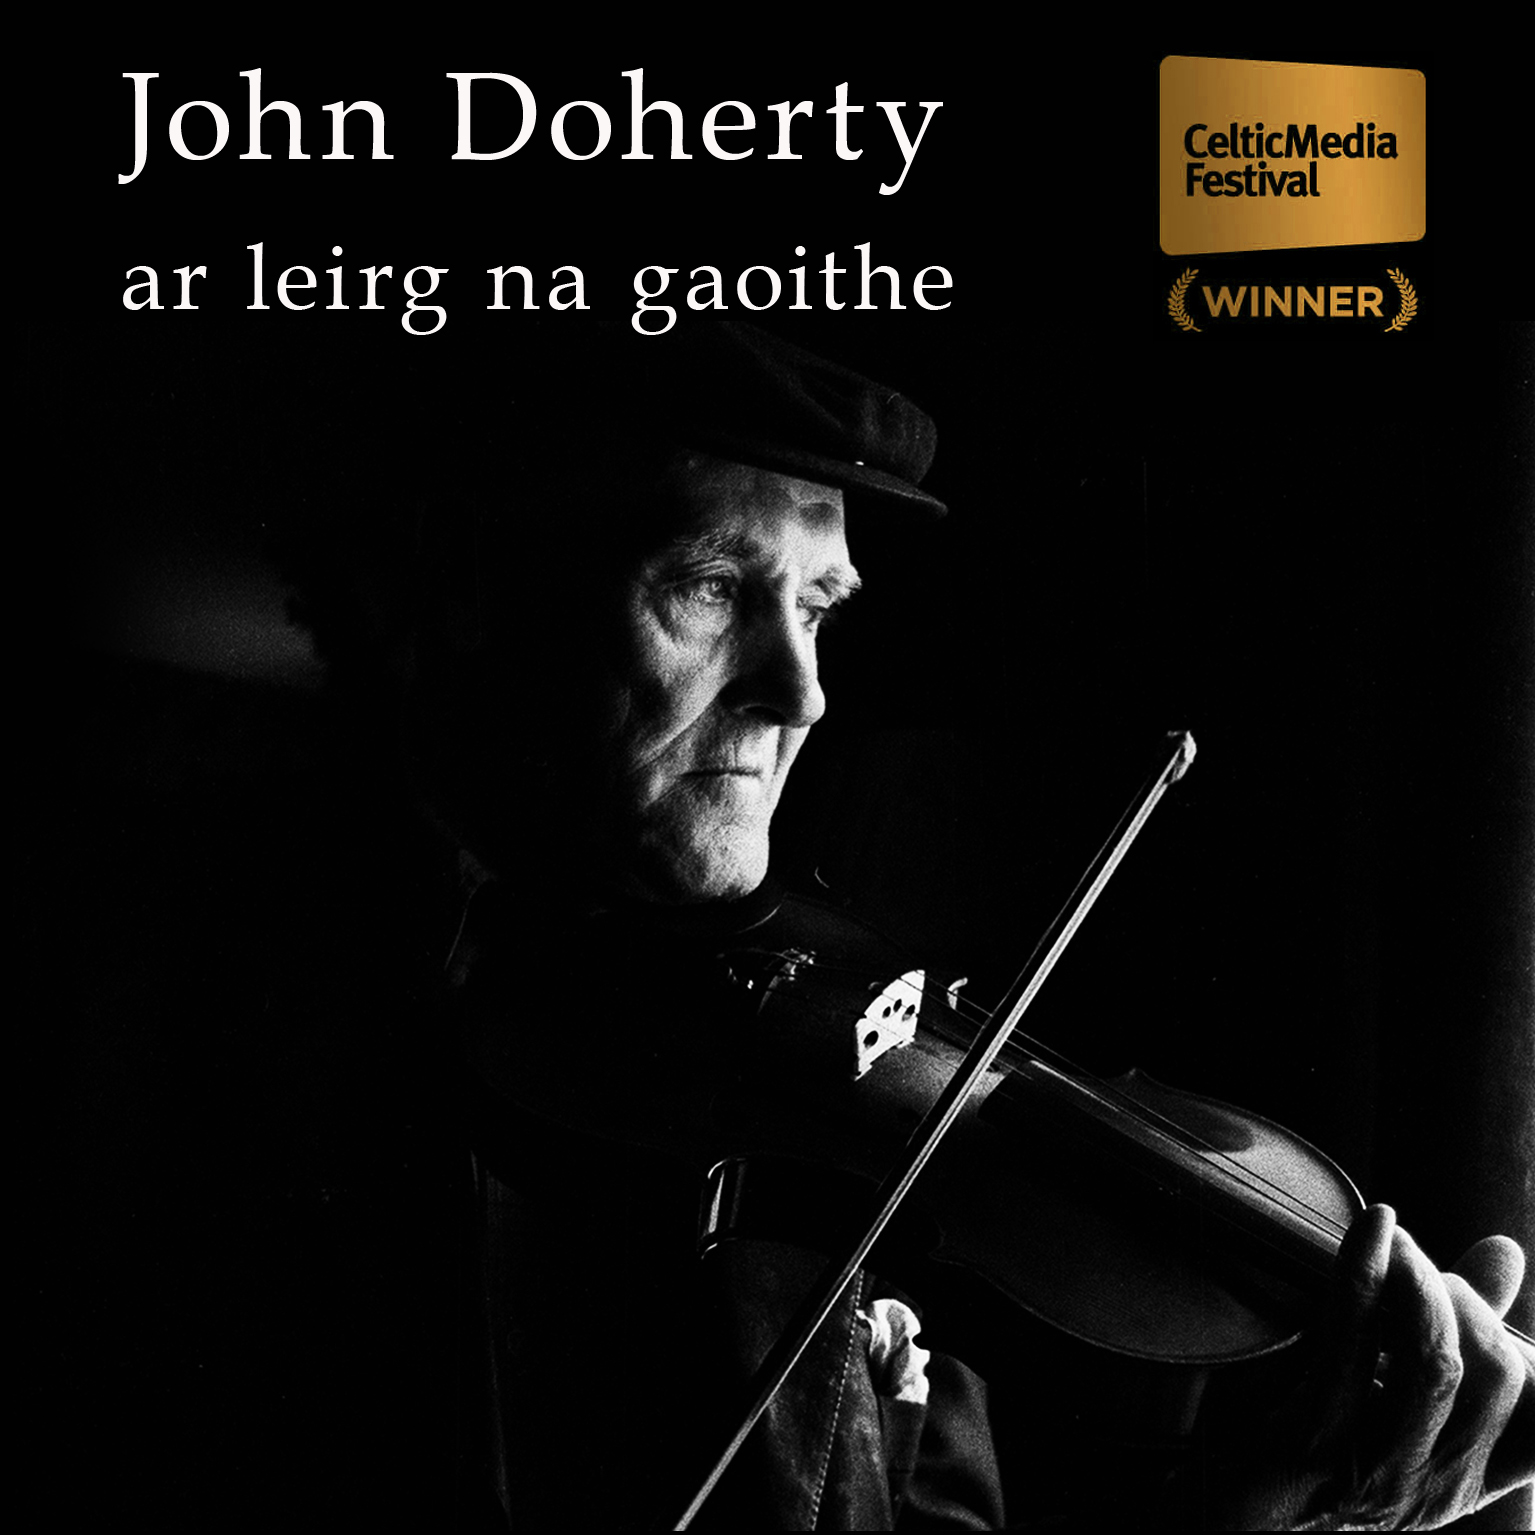 Picture of John Doherty playing the fiddle